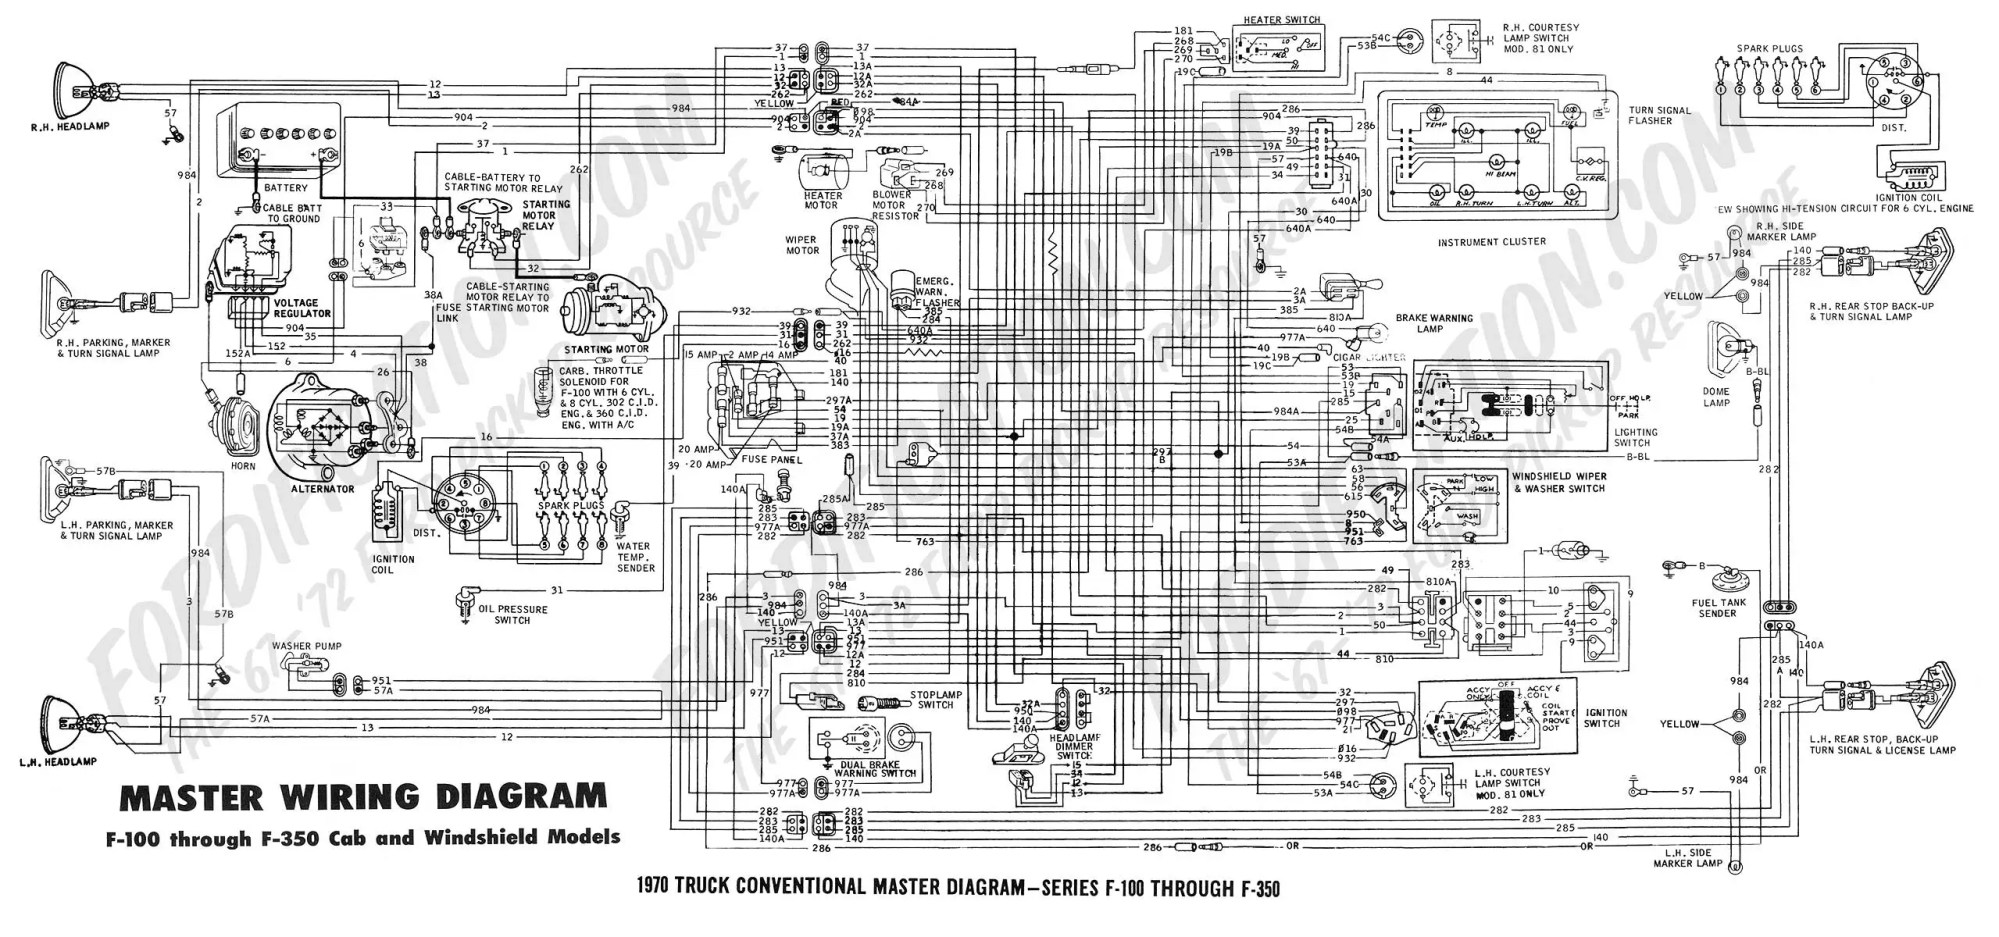 hight resolution of f250 wiring diagram wiring diagram third level 2003 ford f 250 super duty radio wiring diagram 1994 f250 wiring diagram